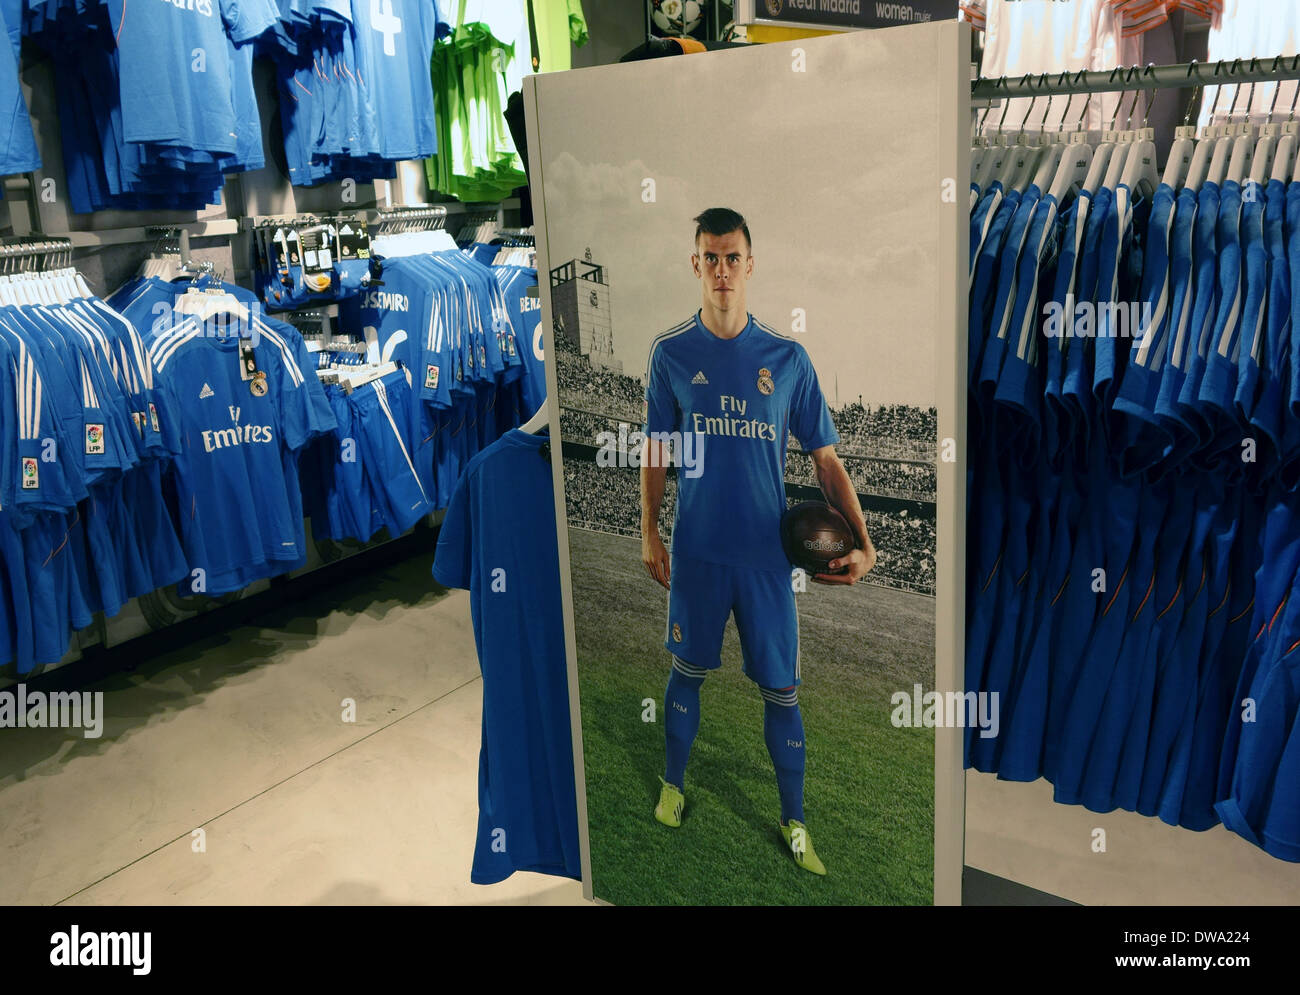 a033559b4 Poster of Gareth Bale in Real Madrid official shop in Bernabeu Stadium